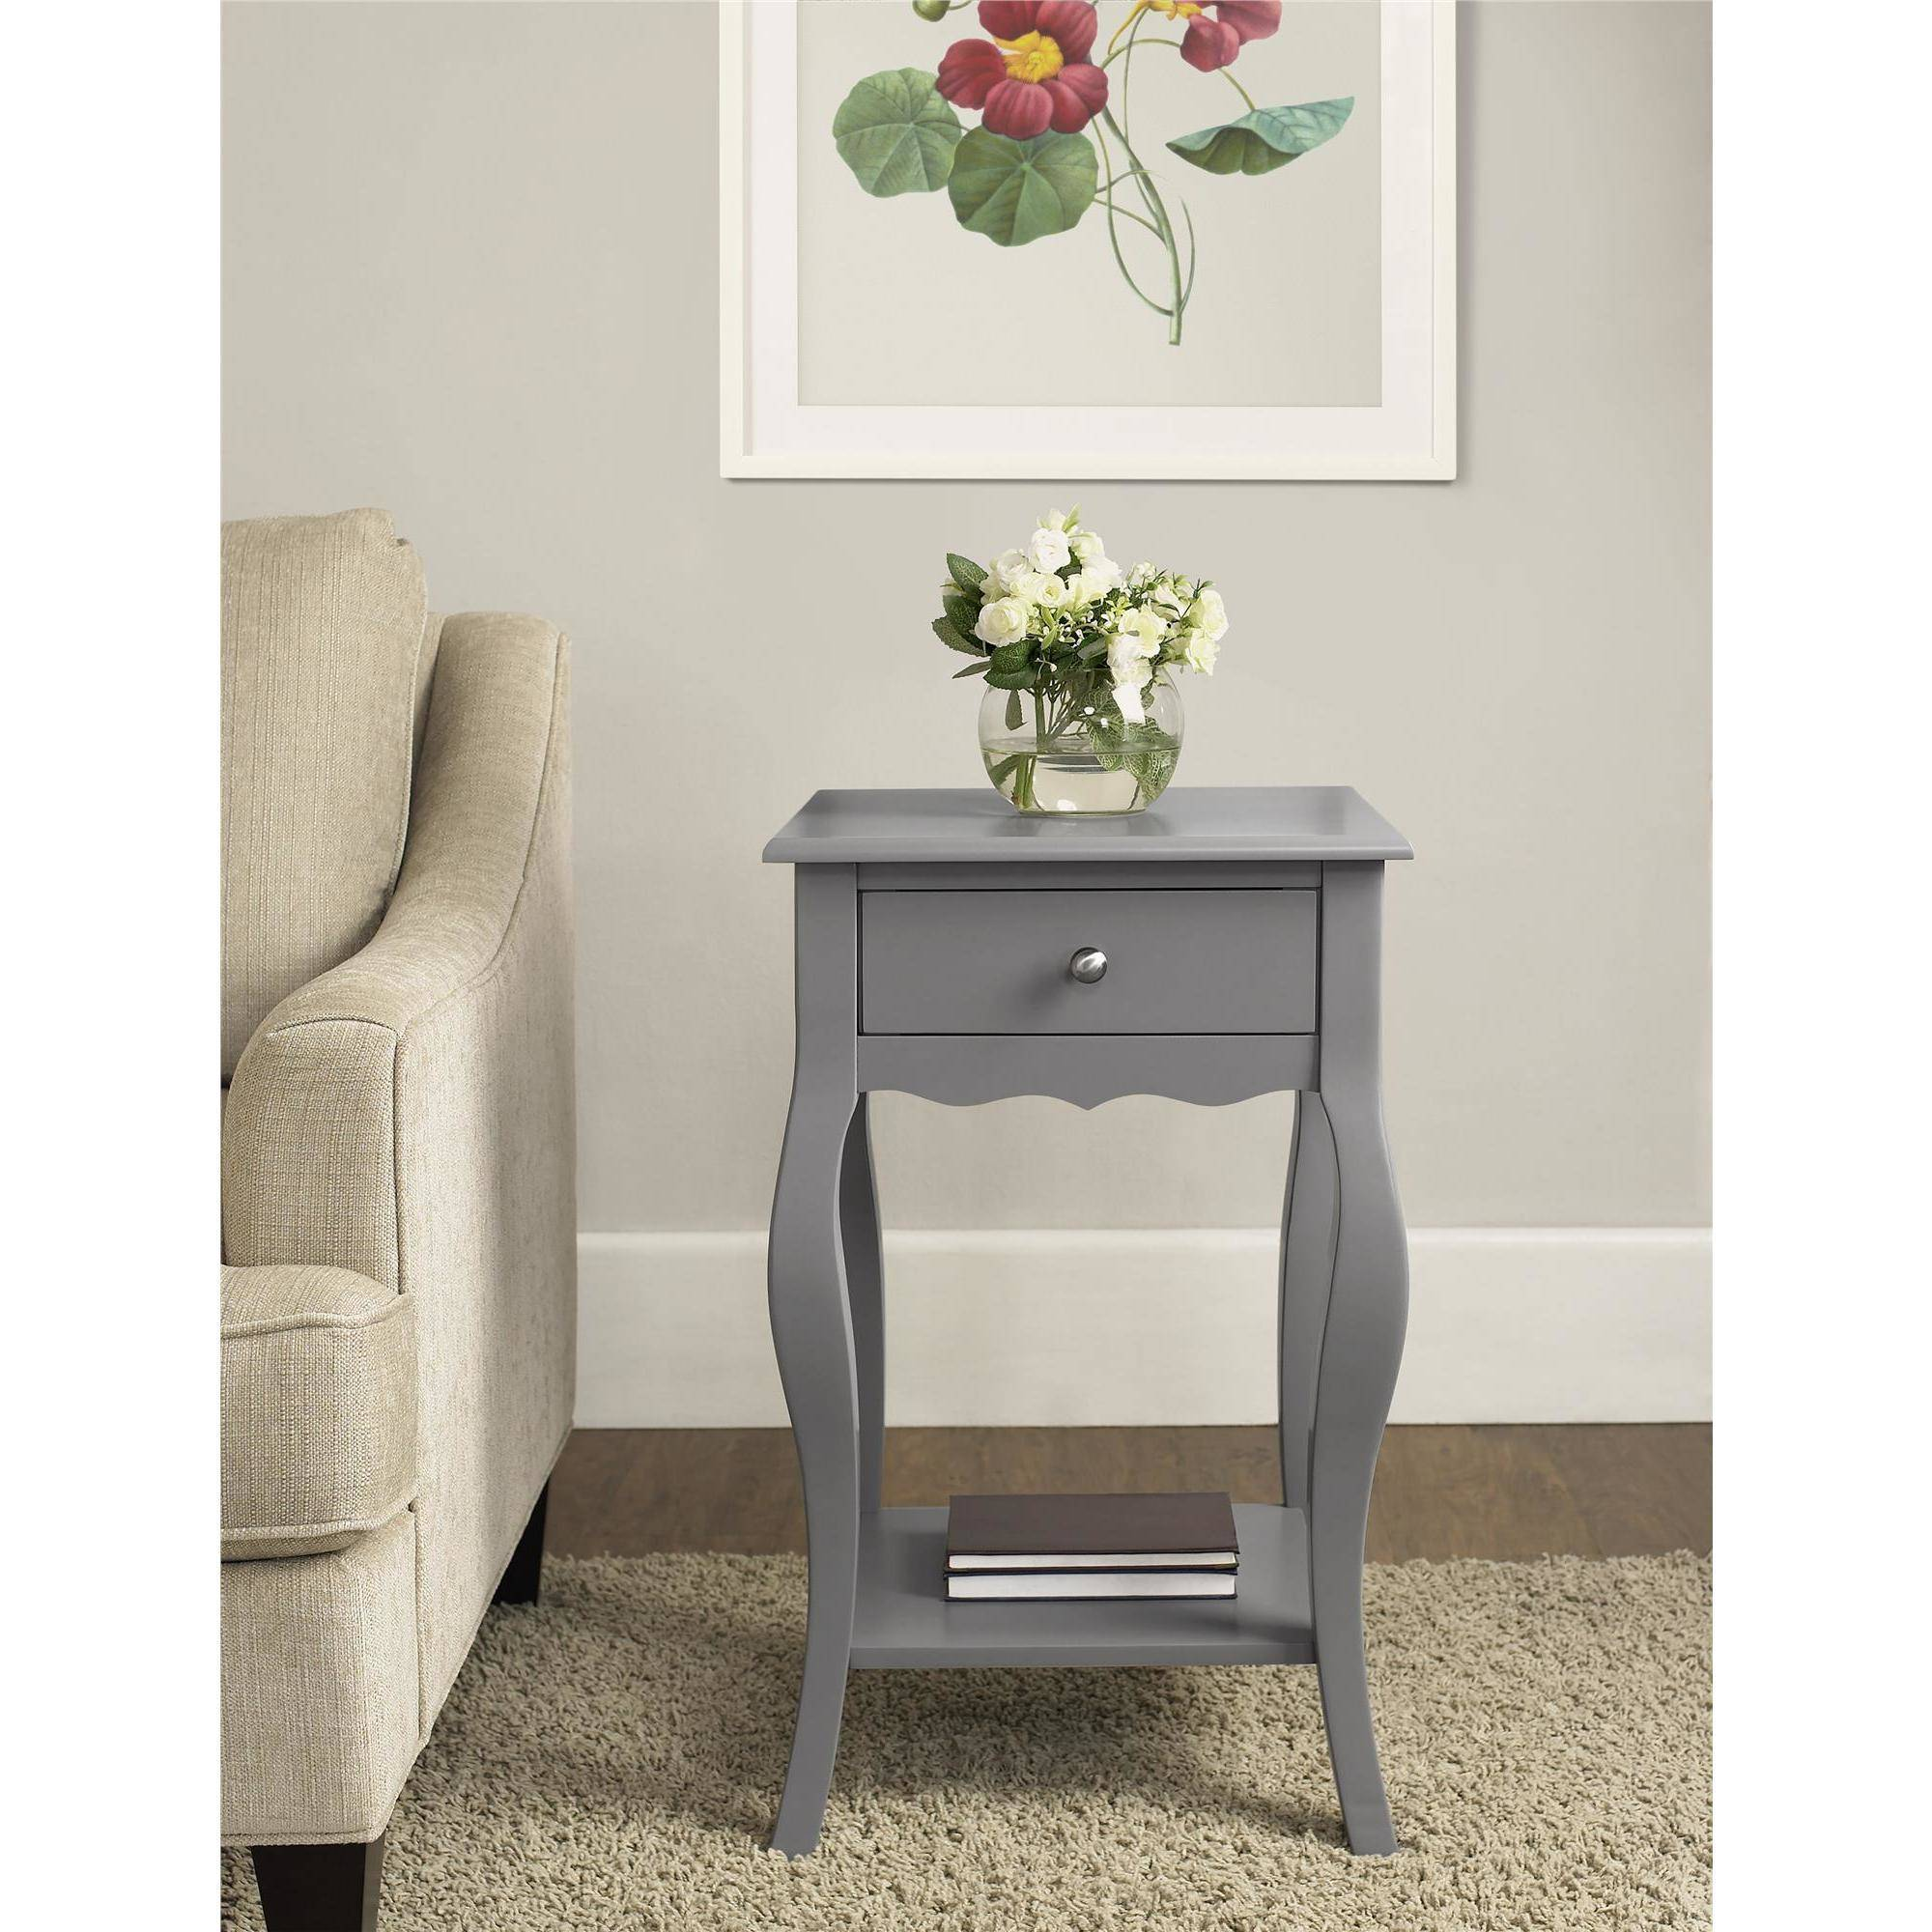 ameriwood home kennedy accent table gray black bar height pipe desk red wood tablecloth white coffee set wine rack kitchen narrow hallway console cabinet cocktail small target